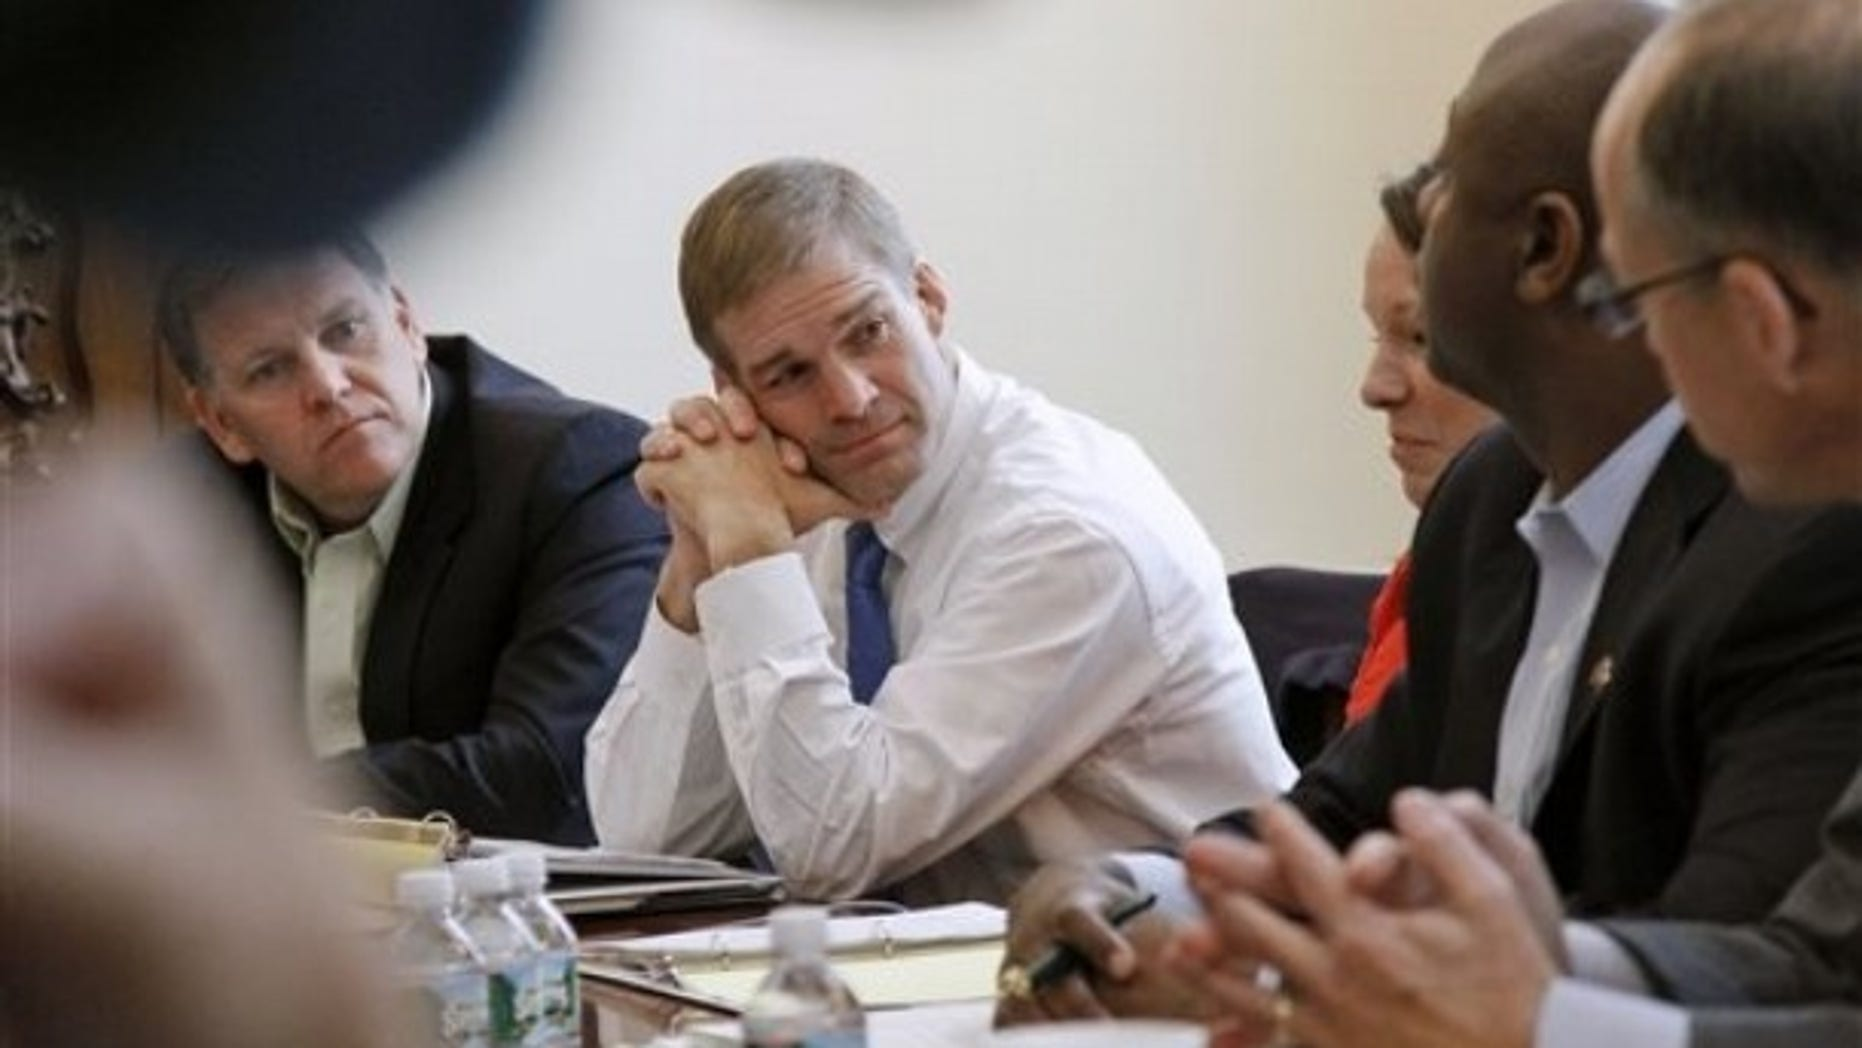 FILE: Nov. 9, 2010: Rep. Jim Jordan, center, meets with other House Republicans on Capitol Hill, in Washington, D.C.